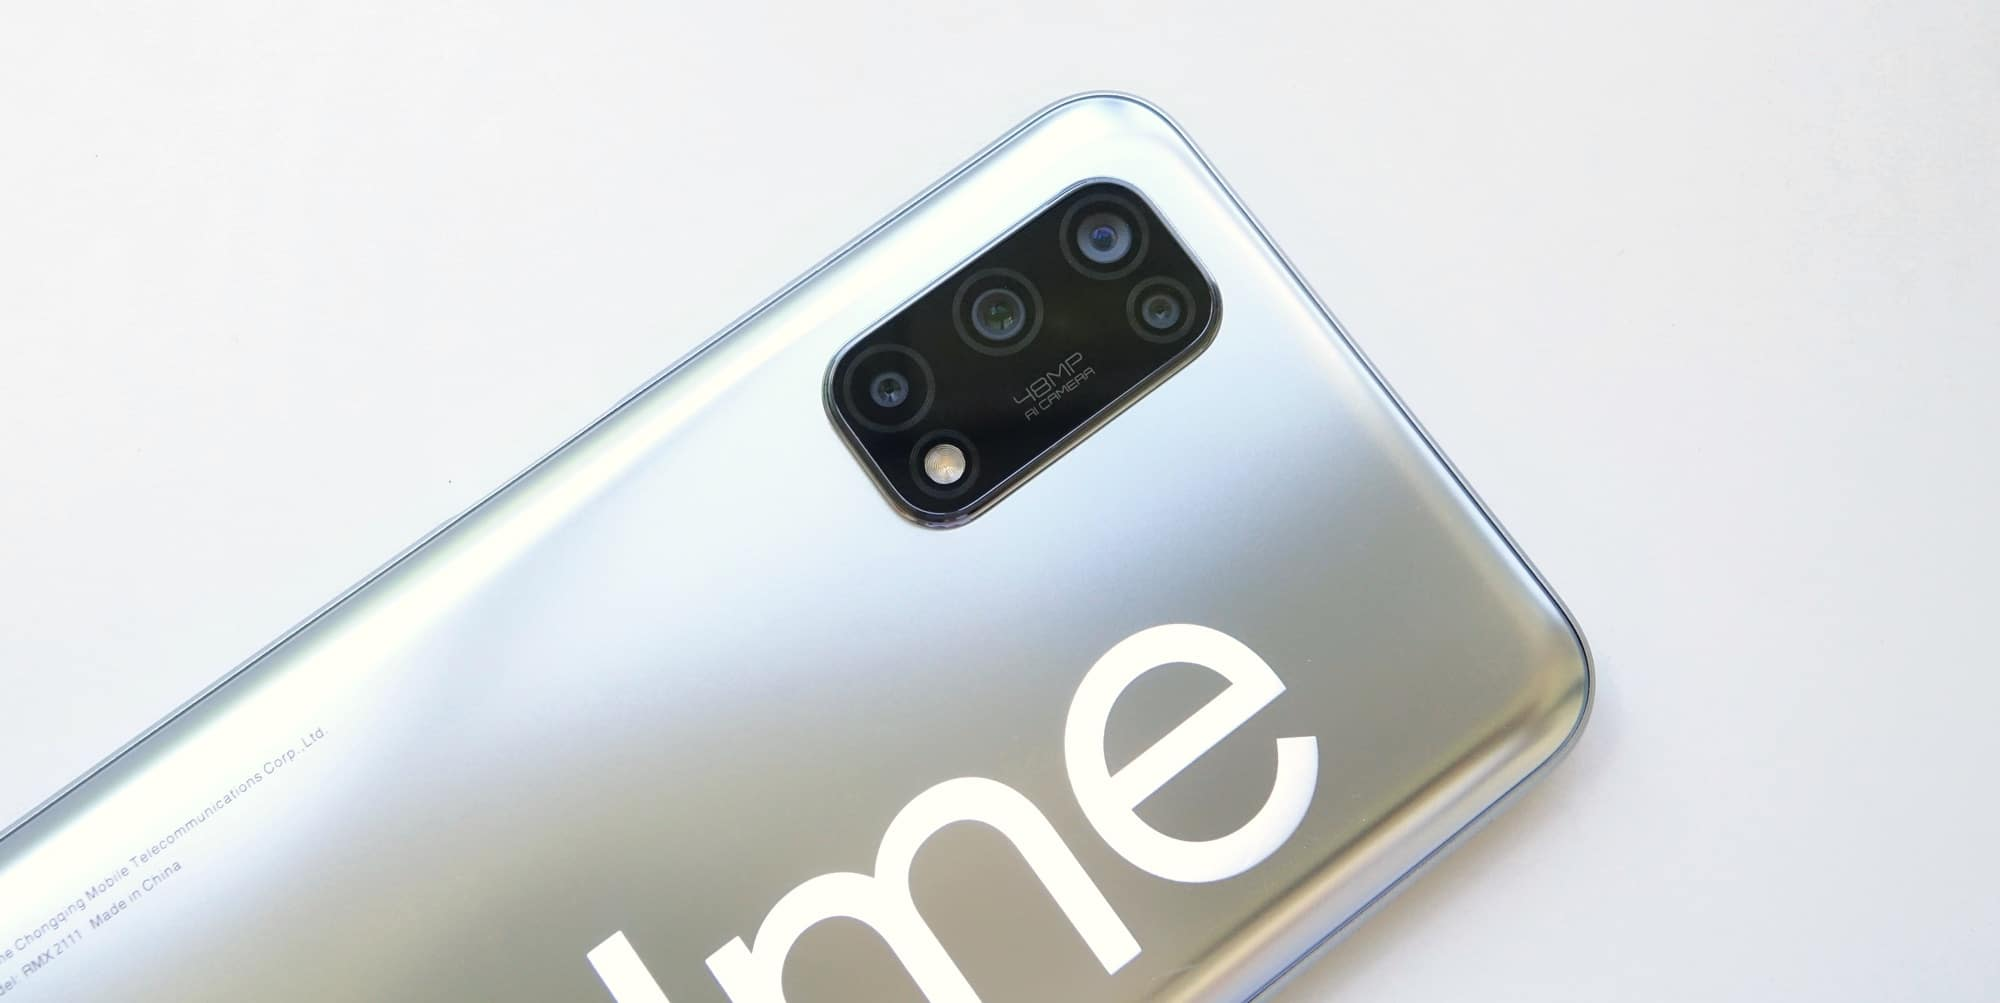 The four cameras of the Realme 7 5G